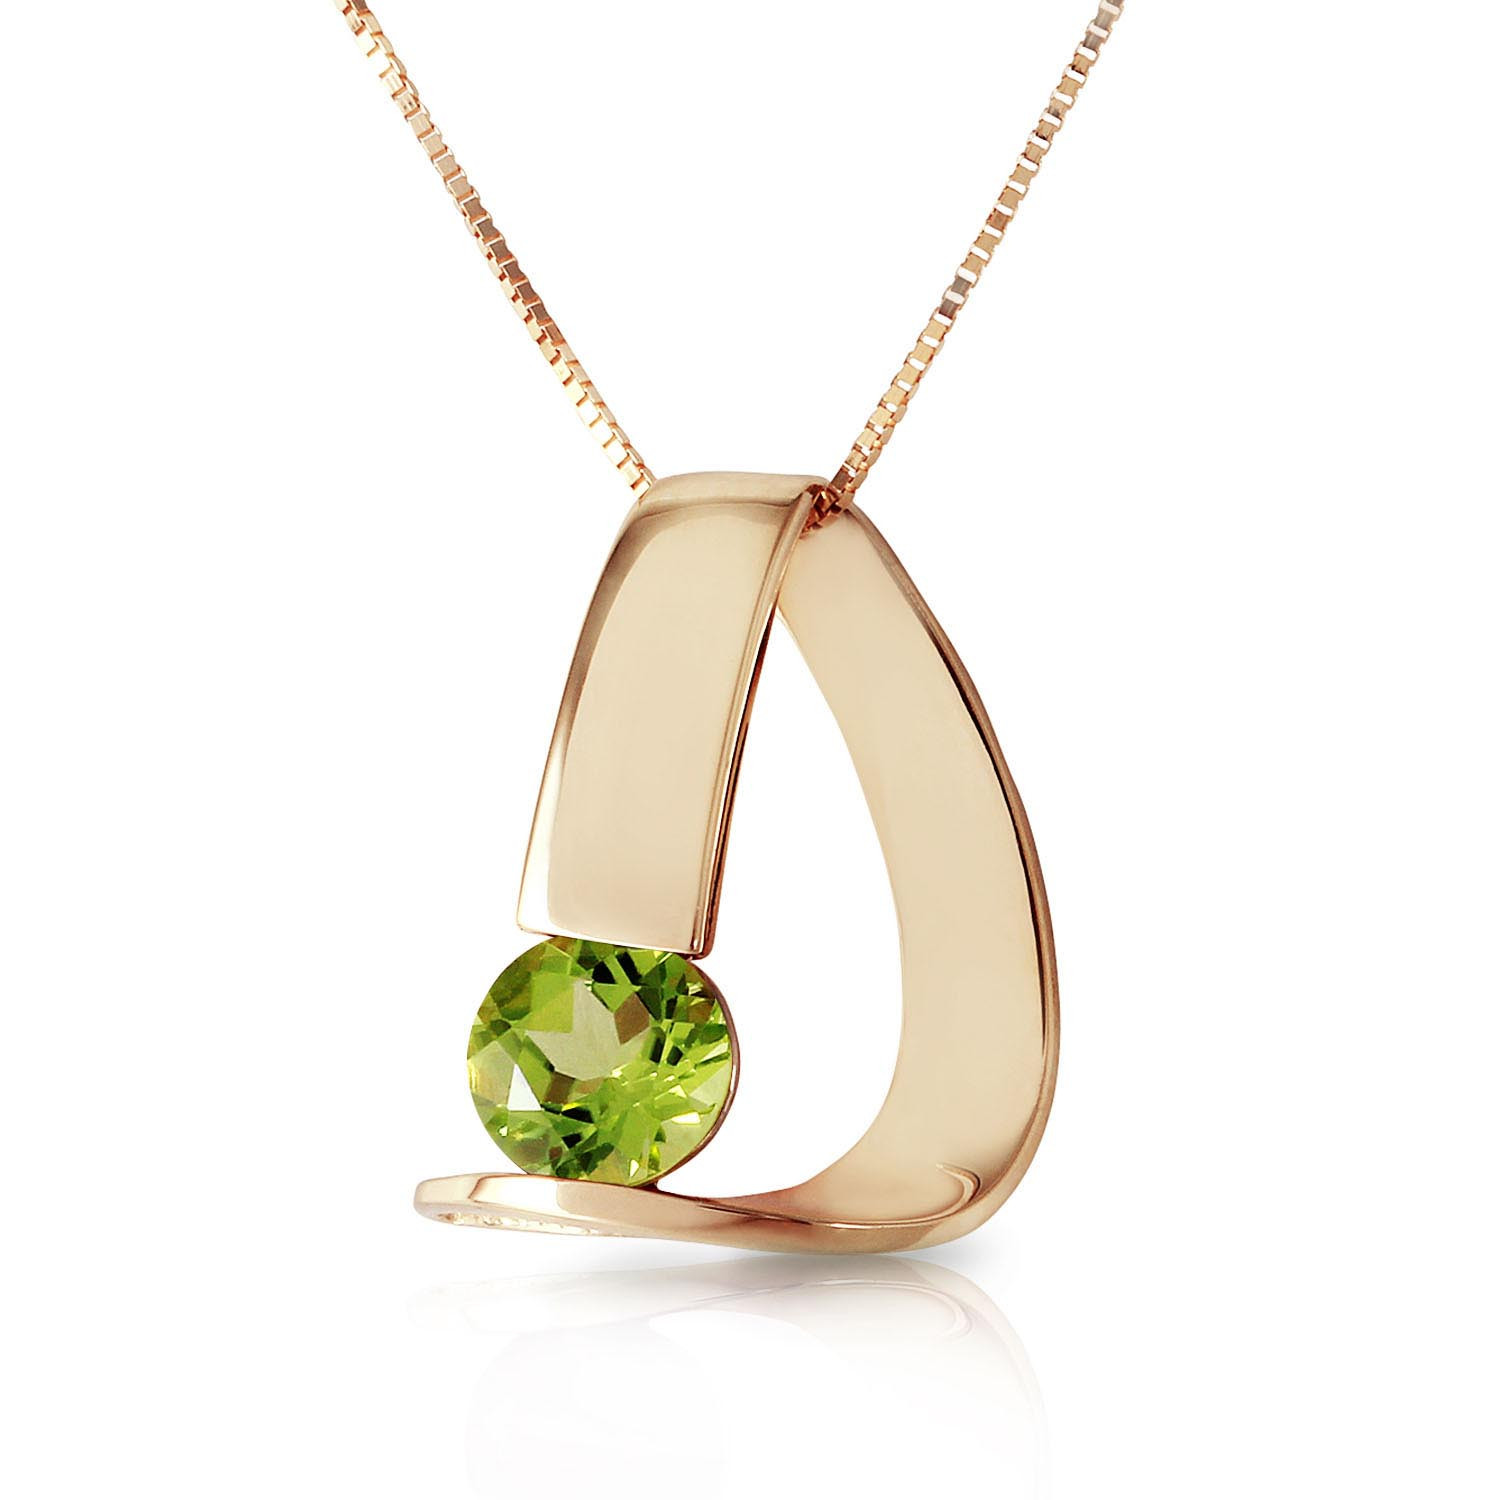 Peridot Arc Pendant Necklace 1 ct in 9ct Gold